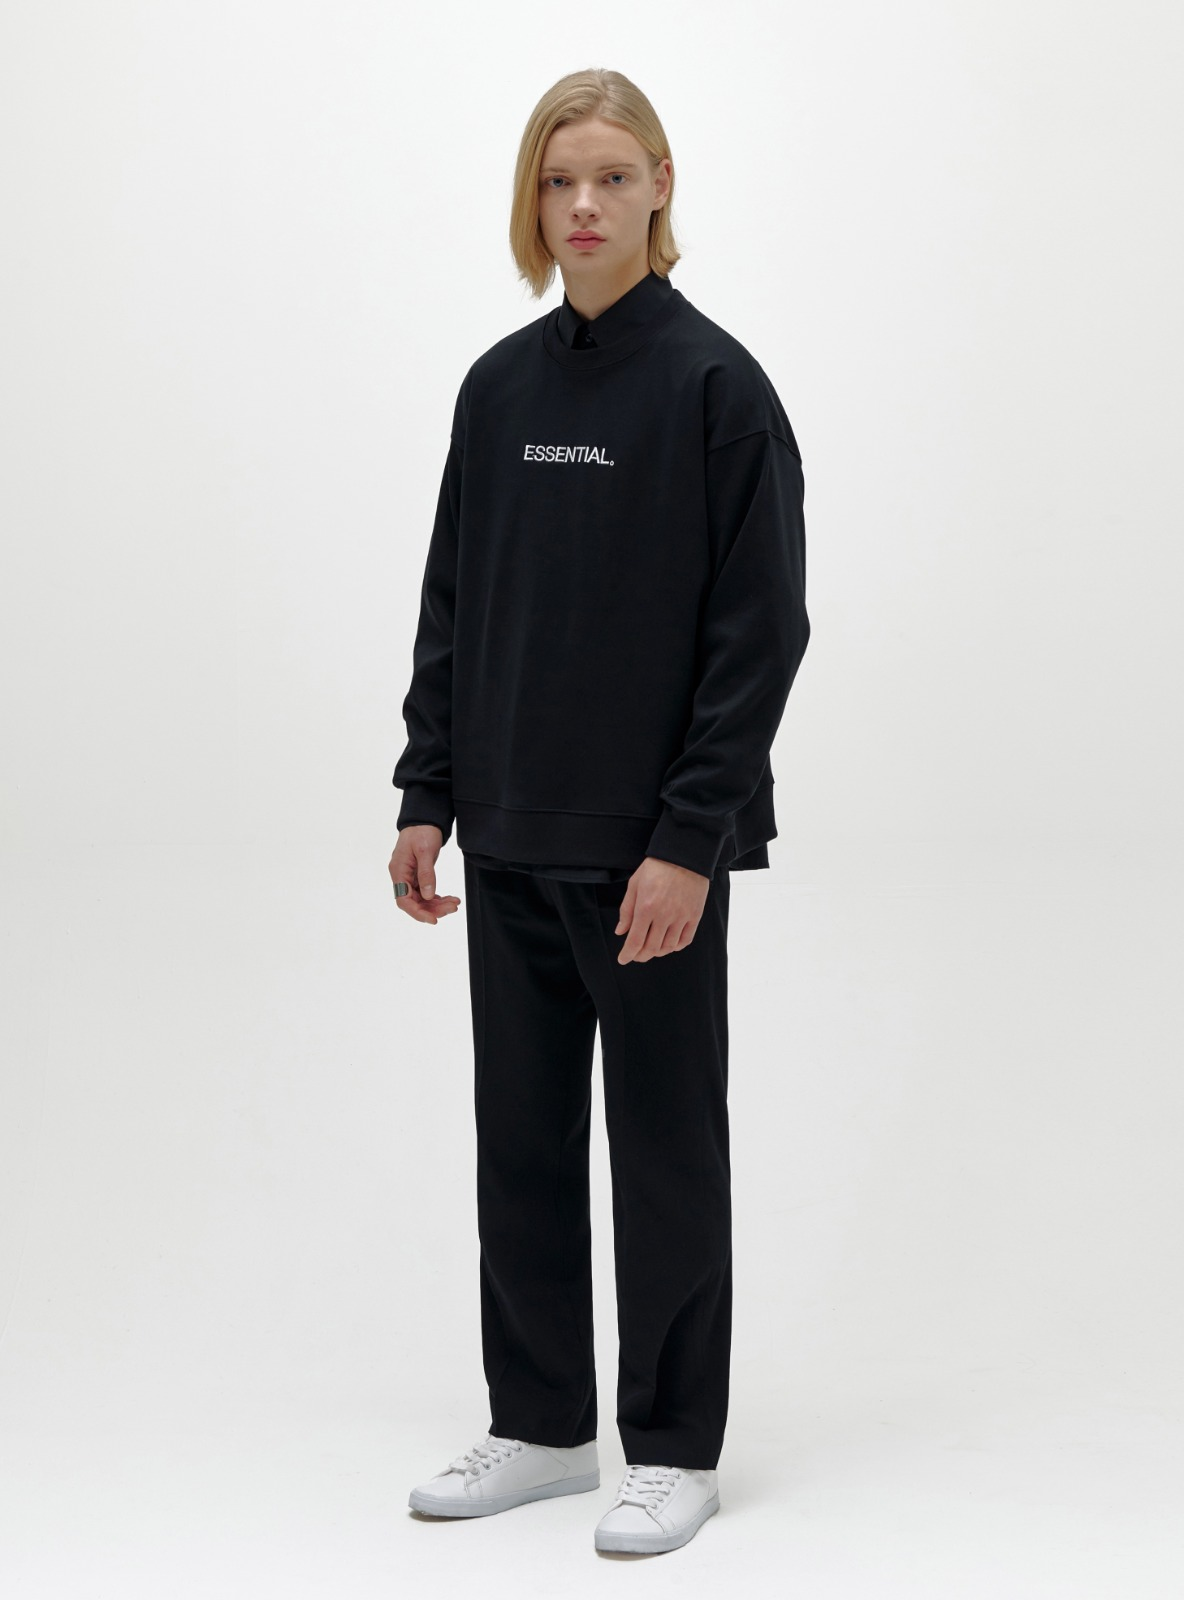 ESSENTIAL LOGO SWEATSHIRT BLACK